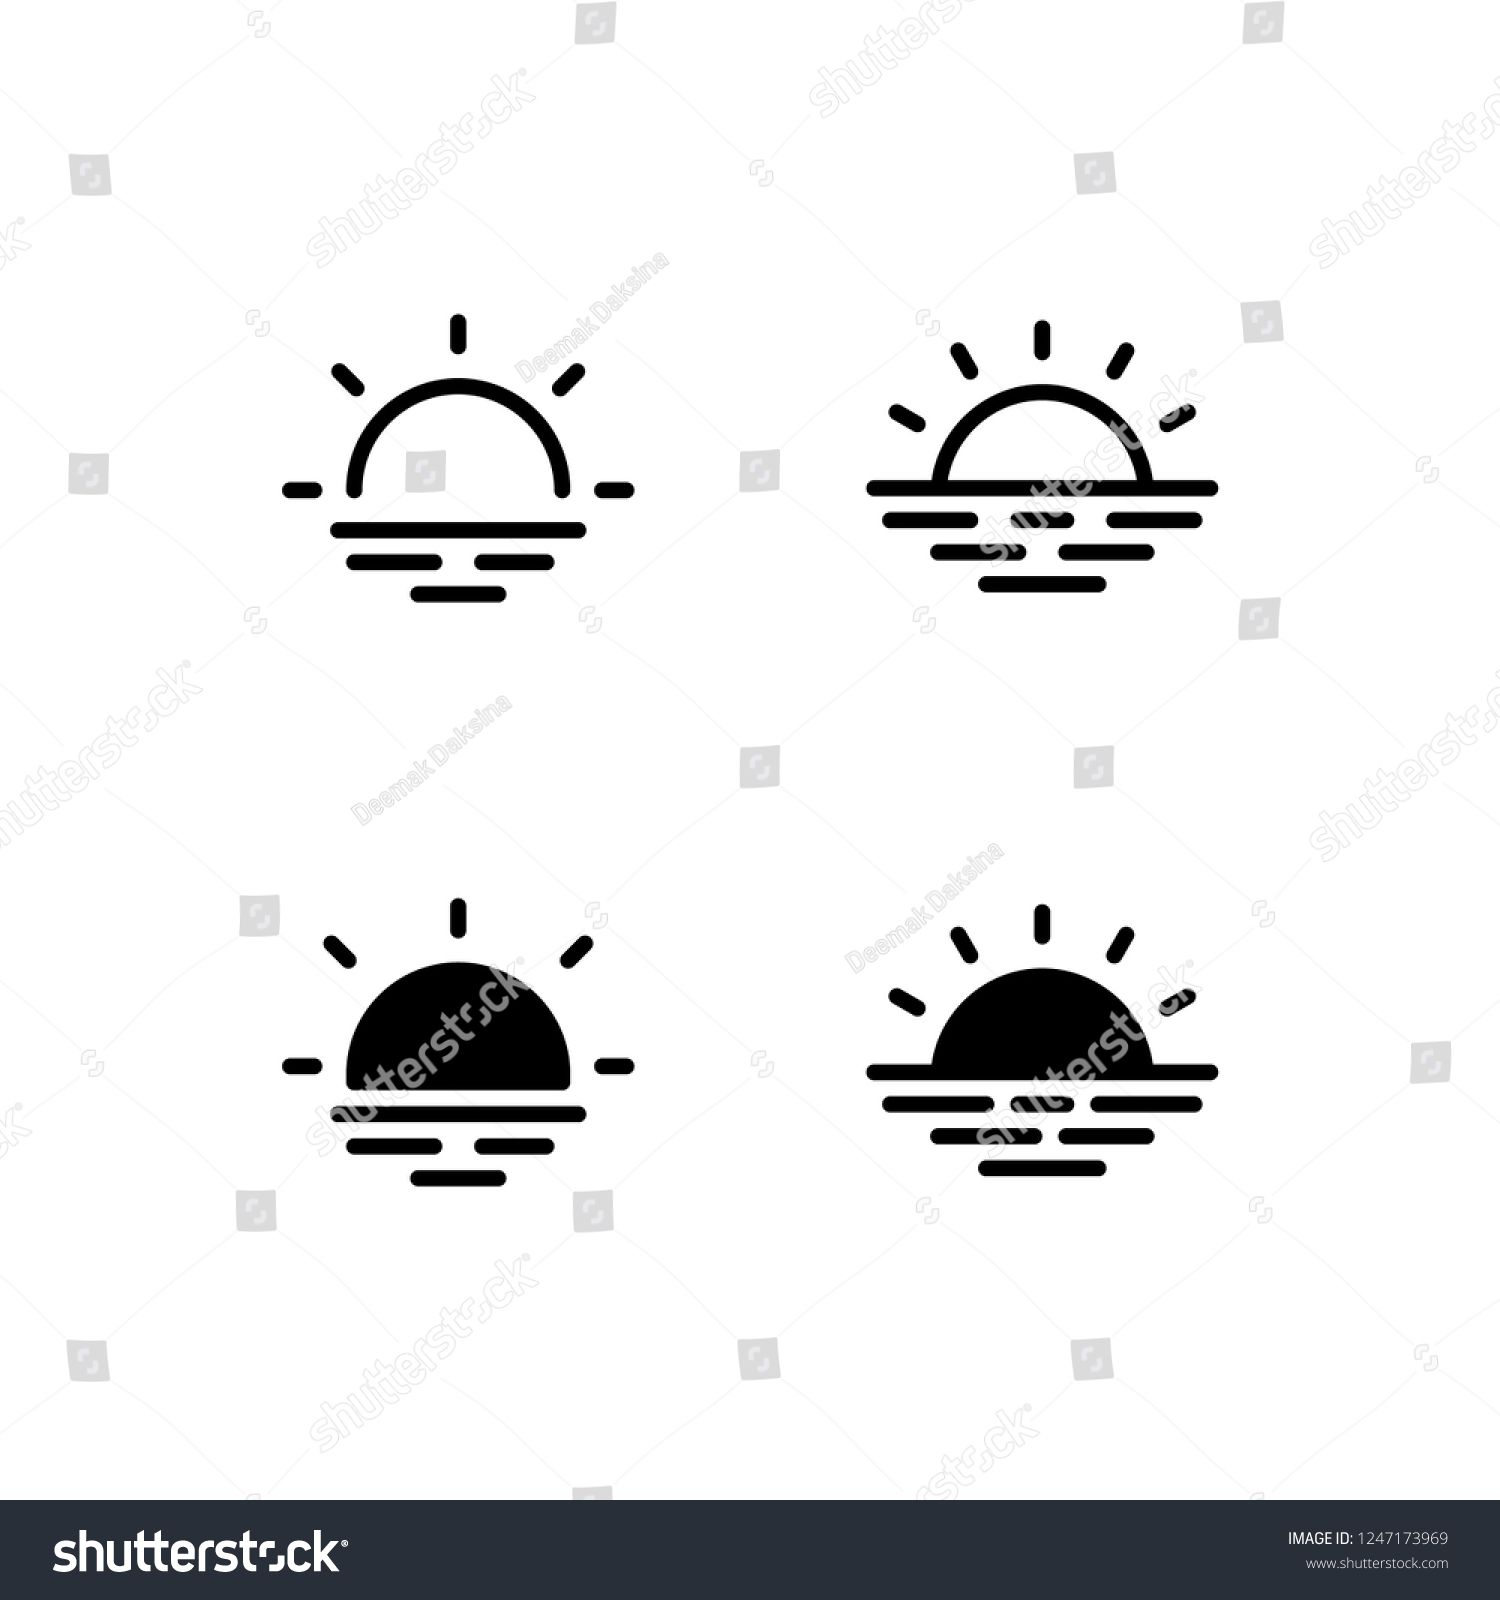 sunrise icon design sunrise sunset sunlight sunshine morning icon logo vector symbol set sign design butto sunrise logo sunset logo sunset tattoos sunrise icon design sunrise sunset